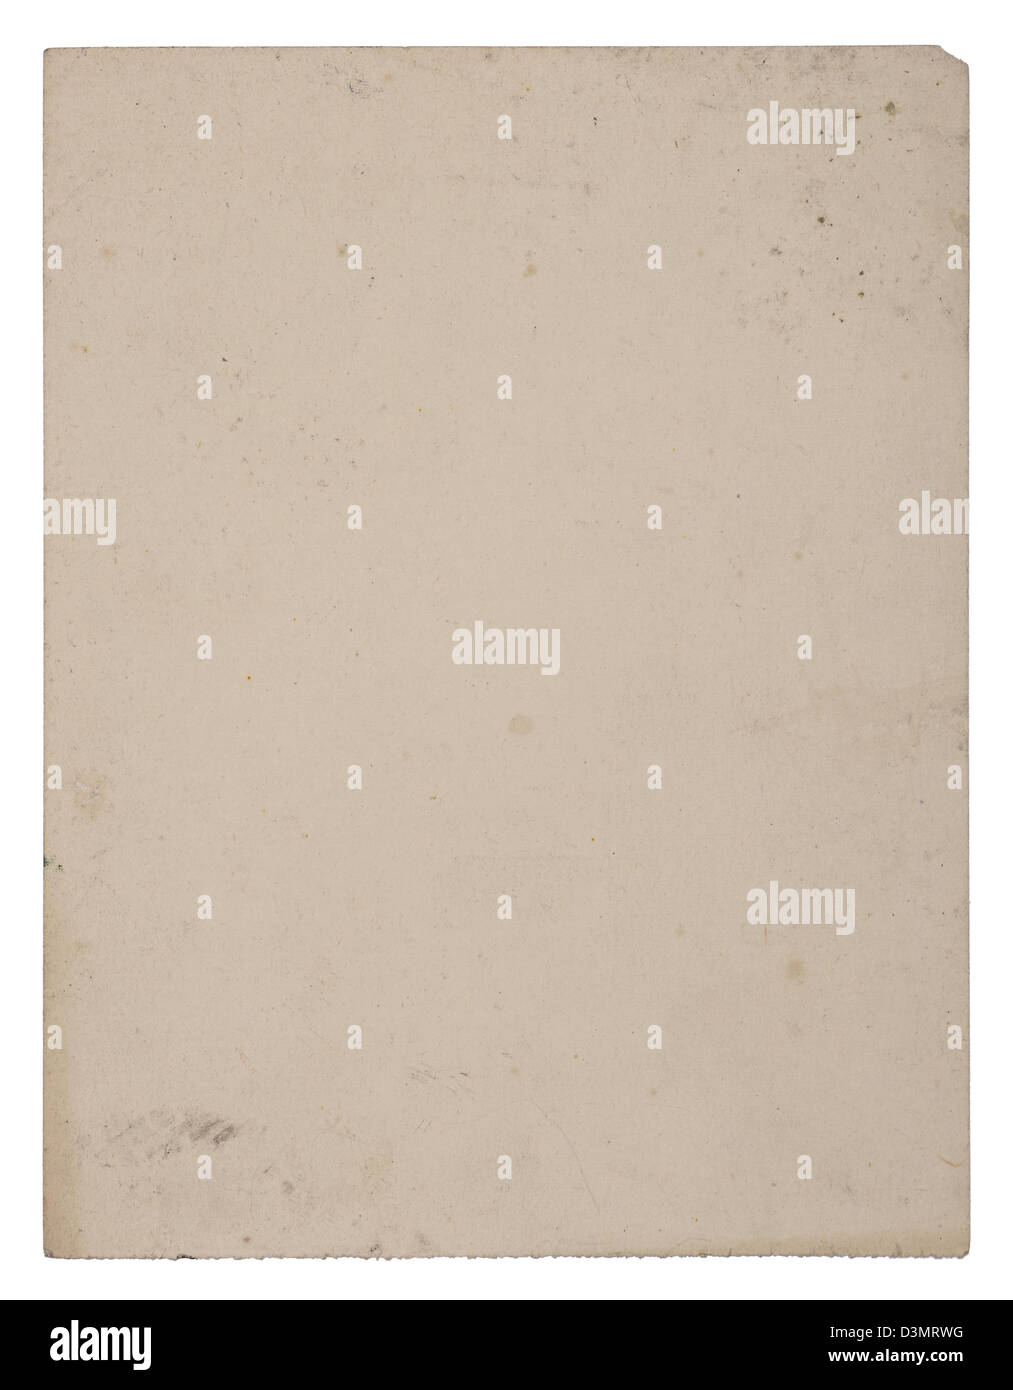 Sheet of old aged paper - Stock Image